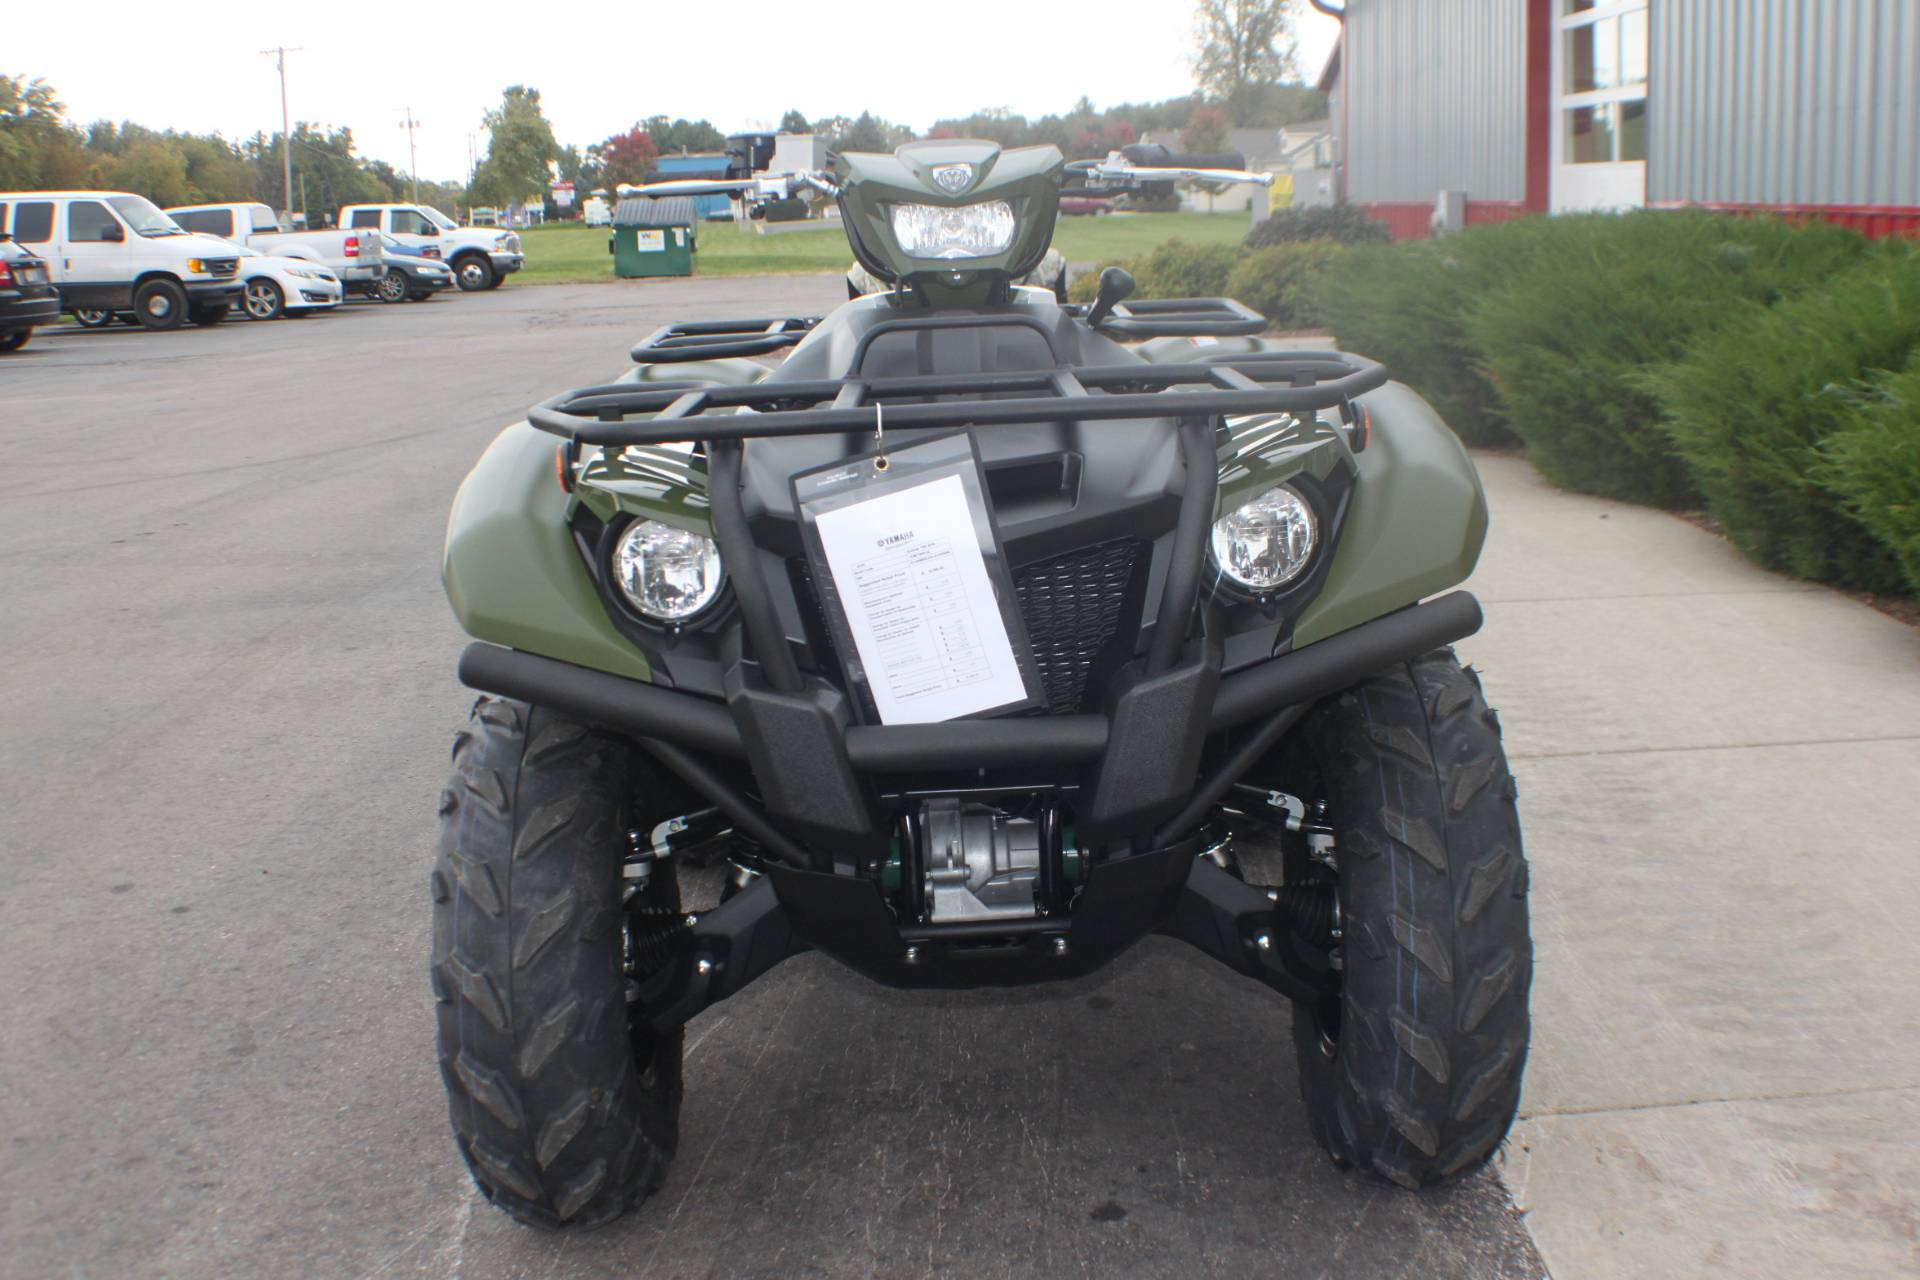 2020 Yamaha Kodiak 700 EPS in Janesville, Wisconsin - Photo 19